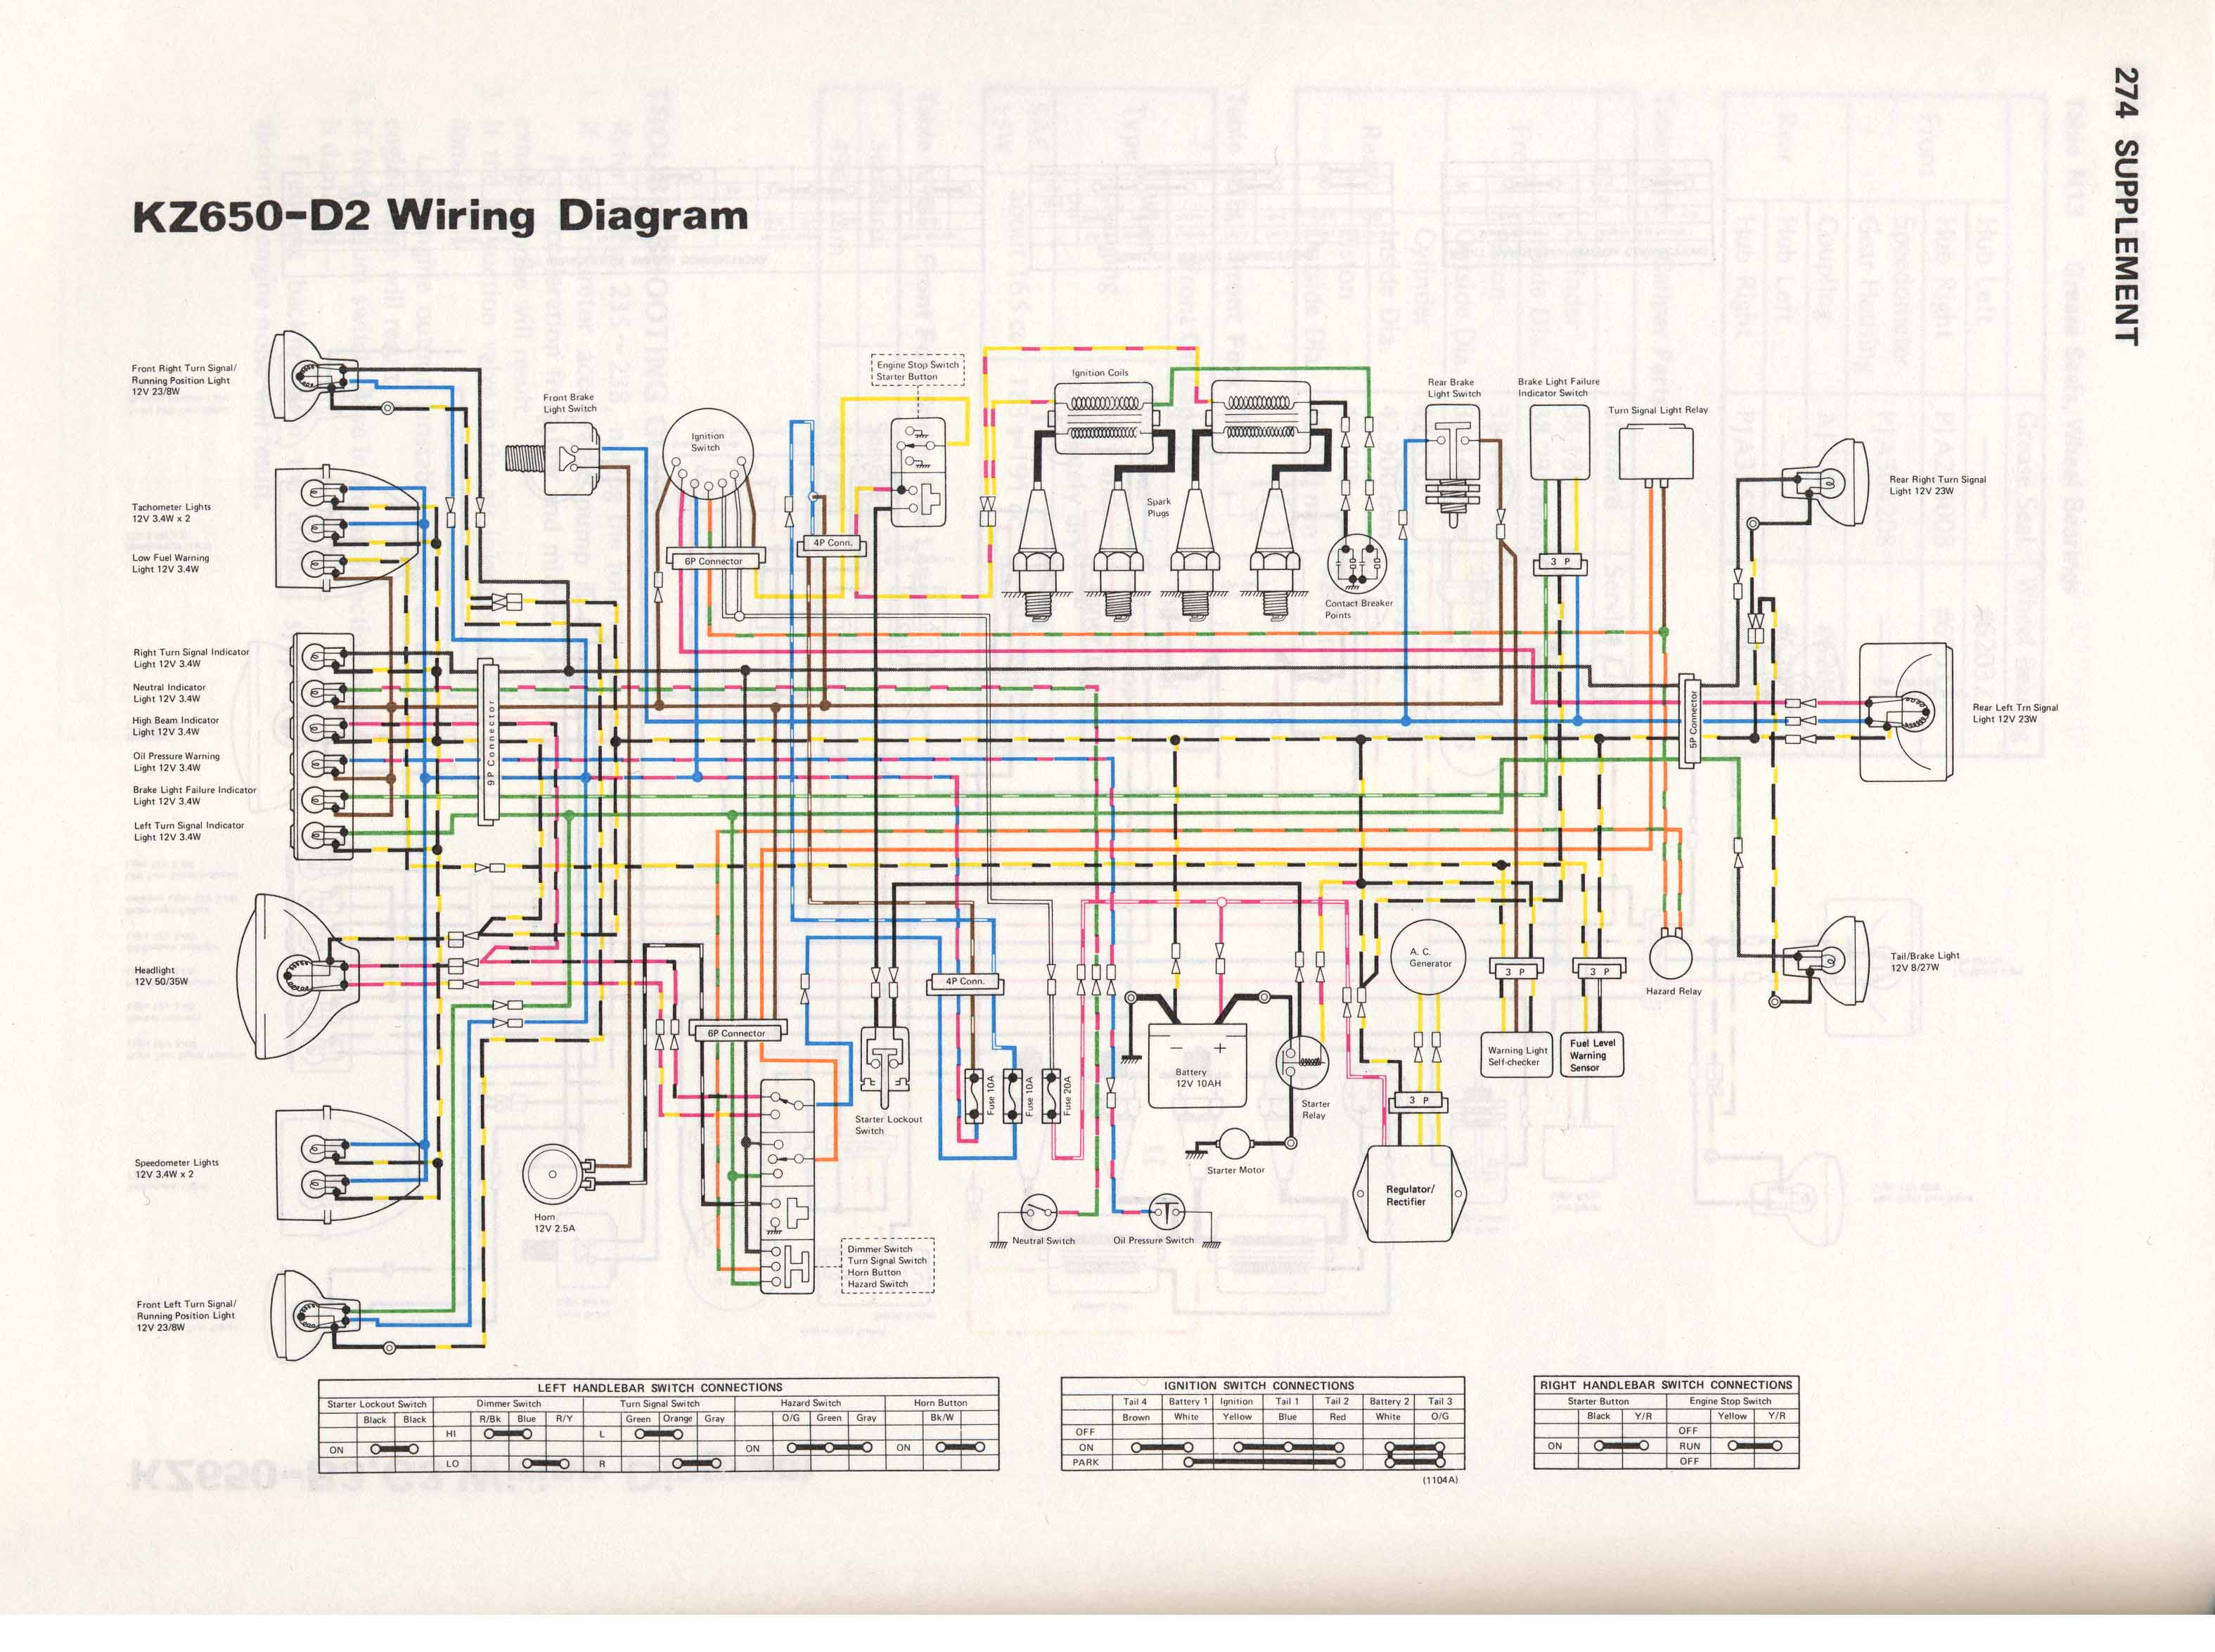 bobber kz650 wiring diagram 80 kz650 wiring diagram kz650.info - wiring diagrams #11